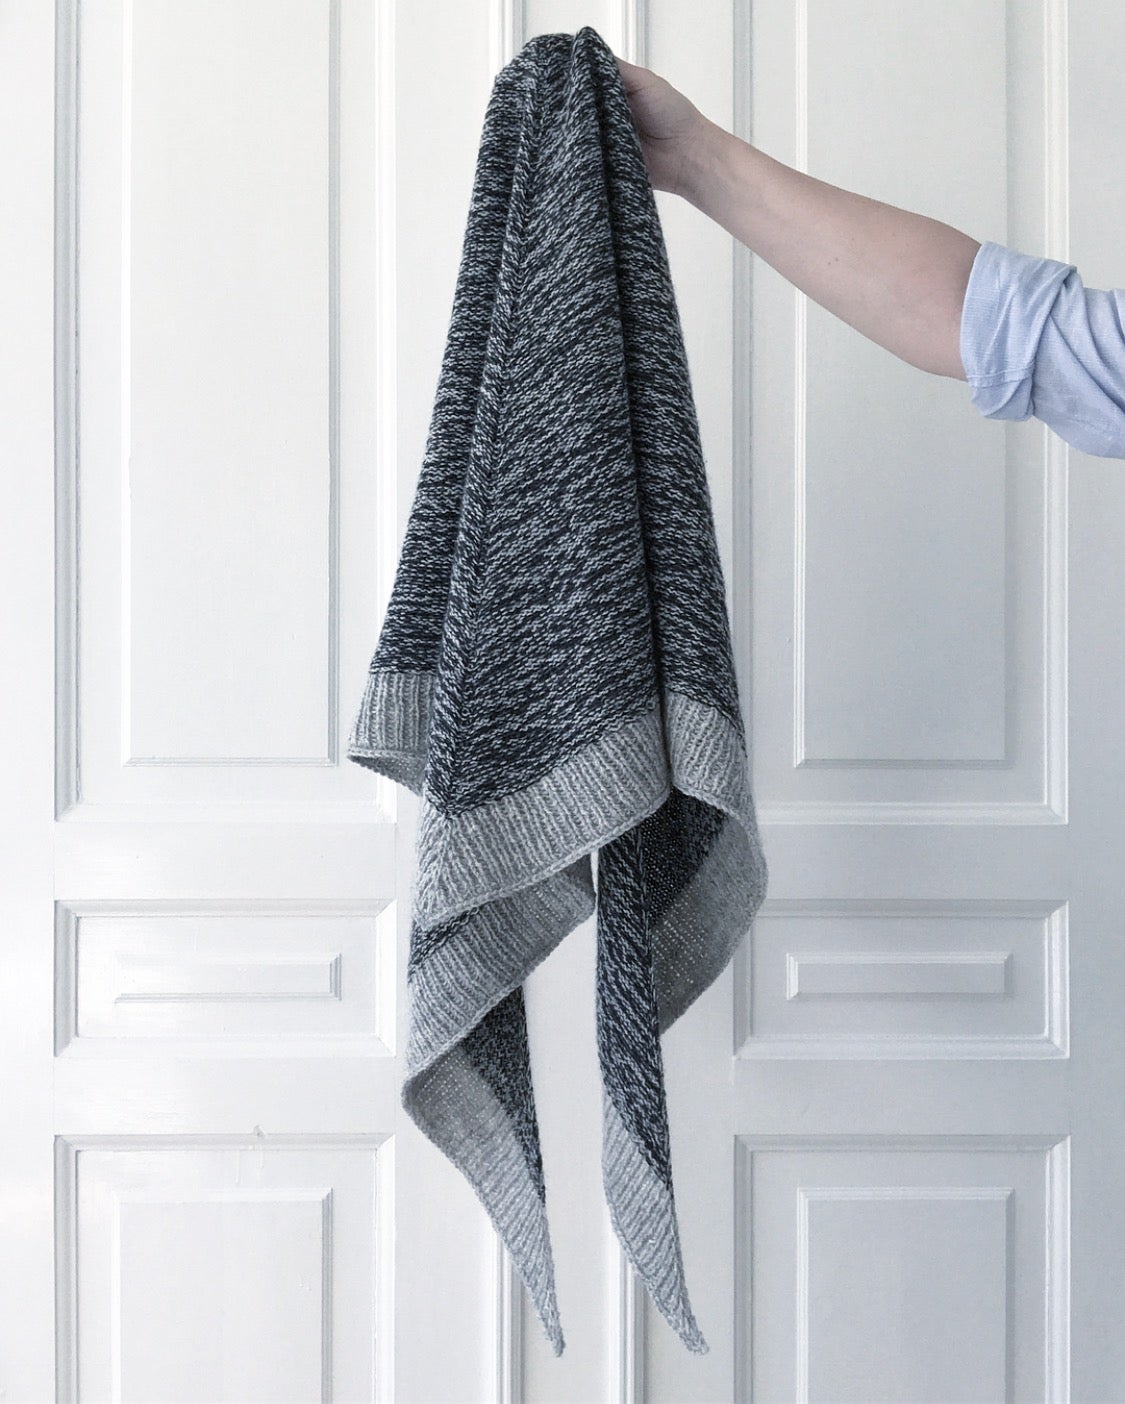 Image of Flickering Sjal (Danish pattern only - find the English pattern on Ravelry)